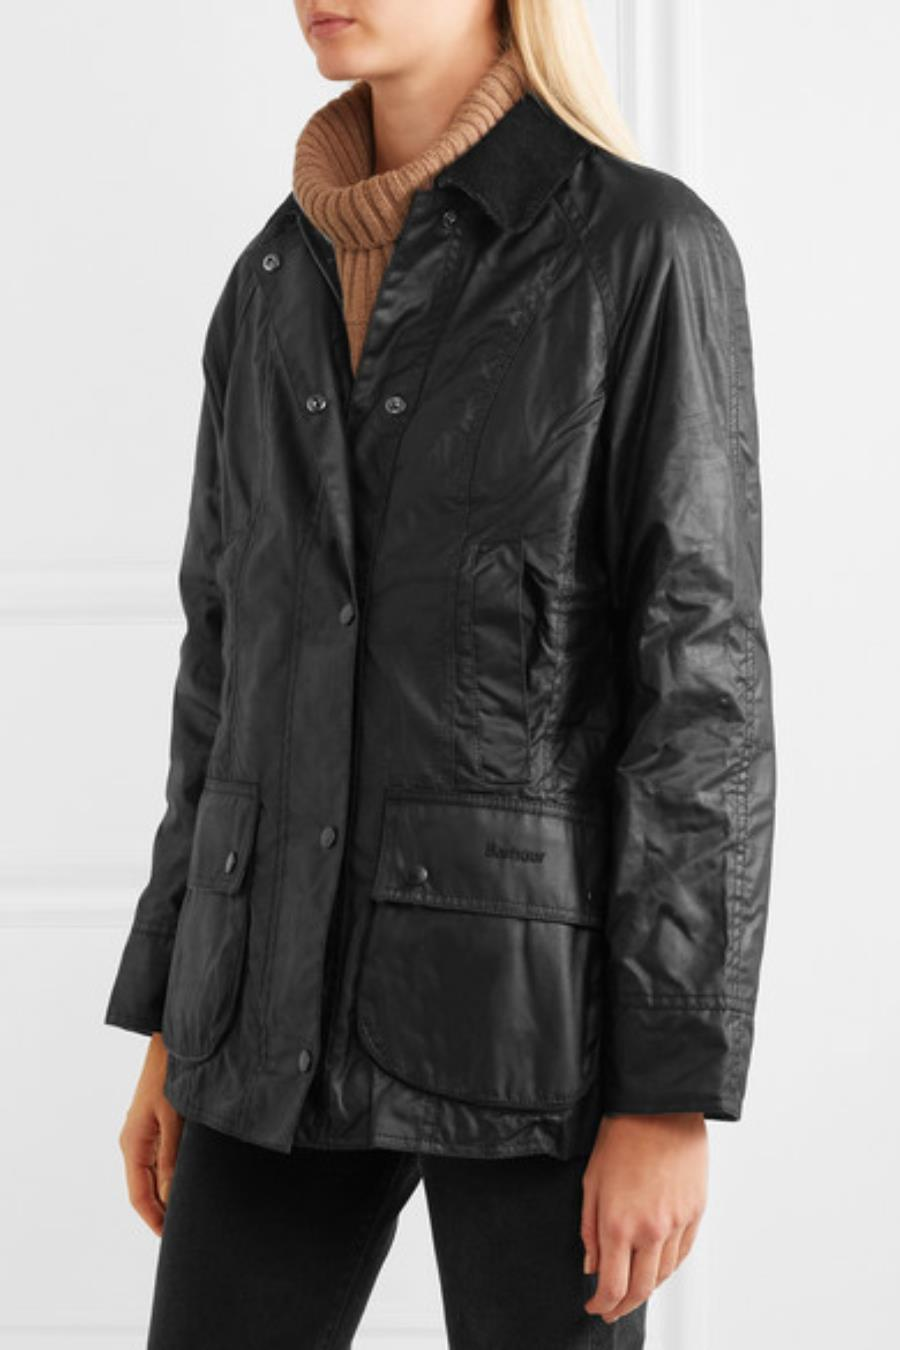 3. Barbour